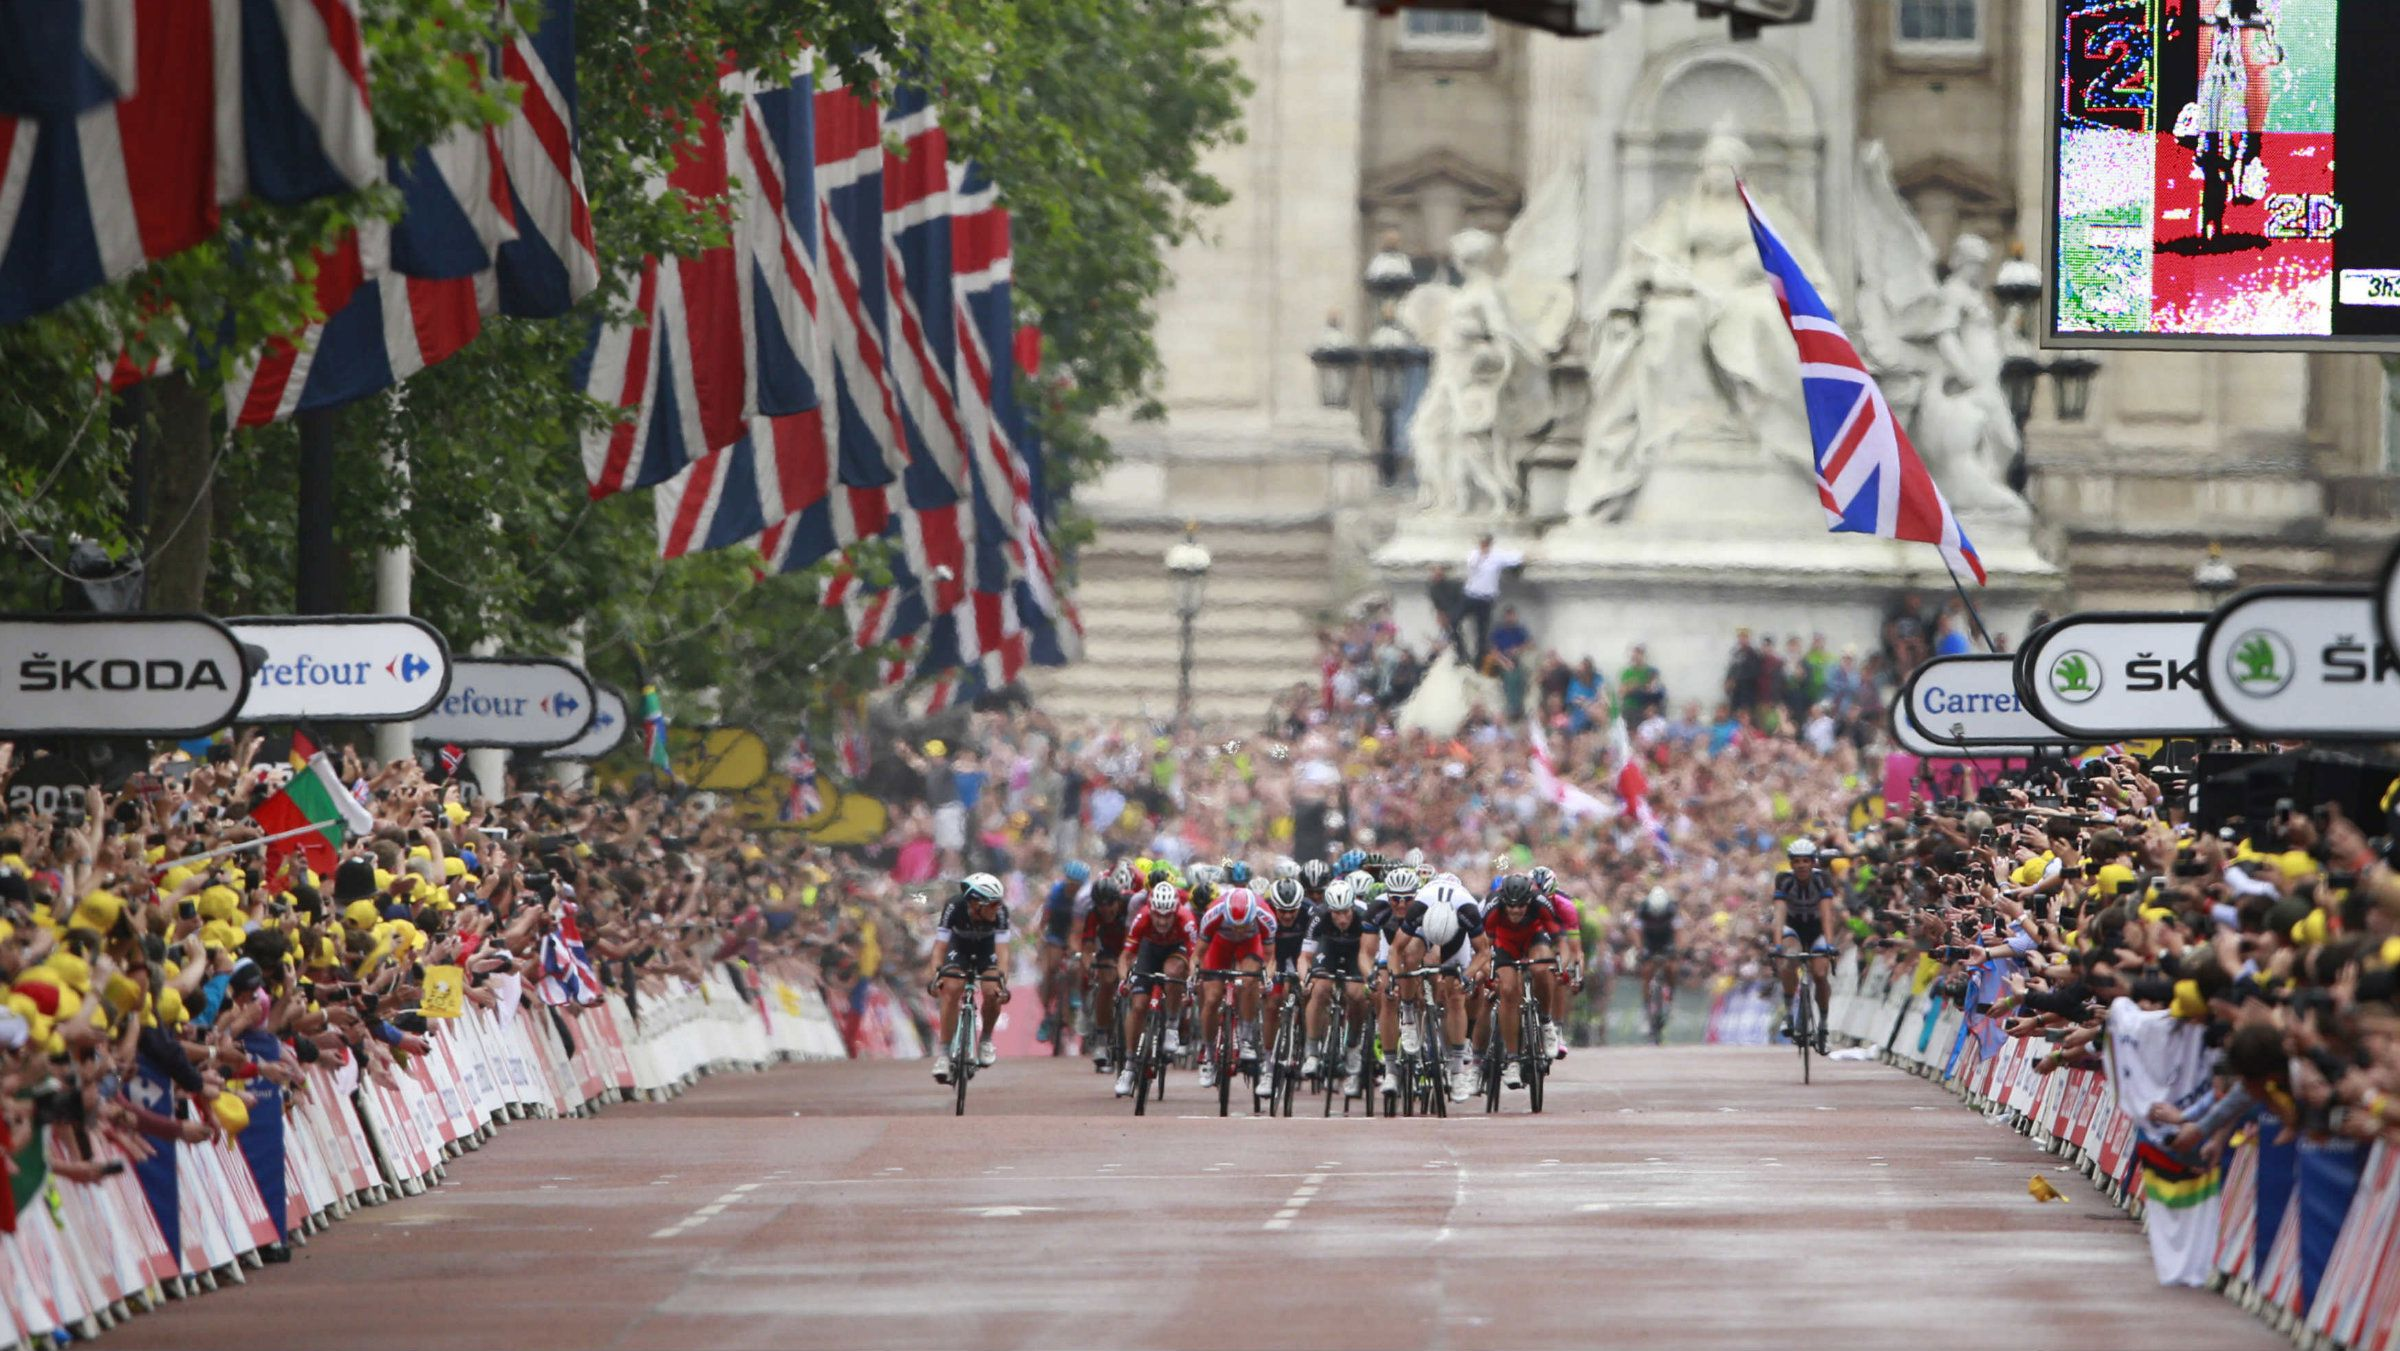 The pack with Stage winner Marcel Kittel of Germany sprints down The Mall as Buckingham Palace is seen in the rear during the third stage of the Tour de France cycling race over 155 kilometers (96.3 miles) with start in Cambridge and finish in London, England, Monday, July 7, 2014.